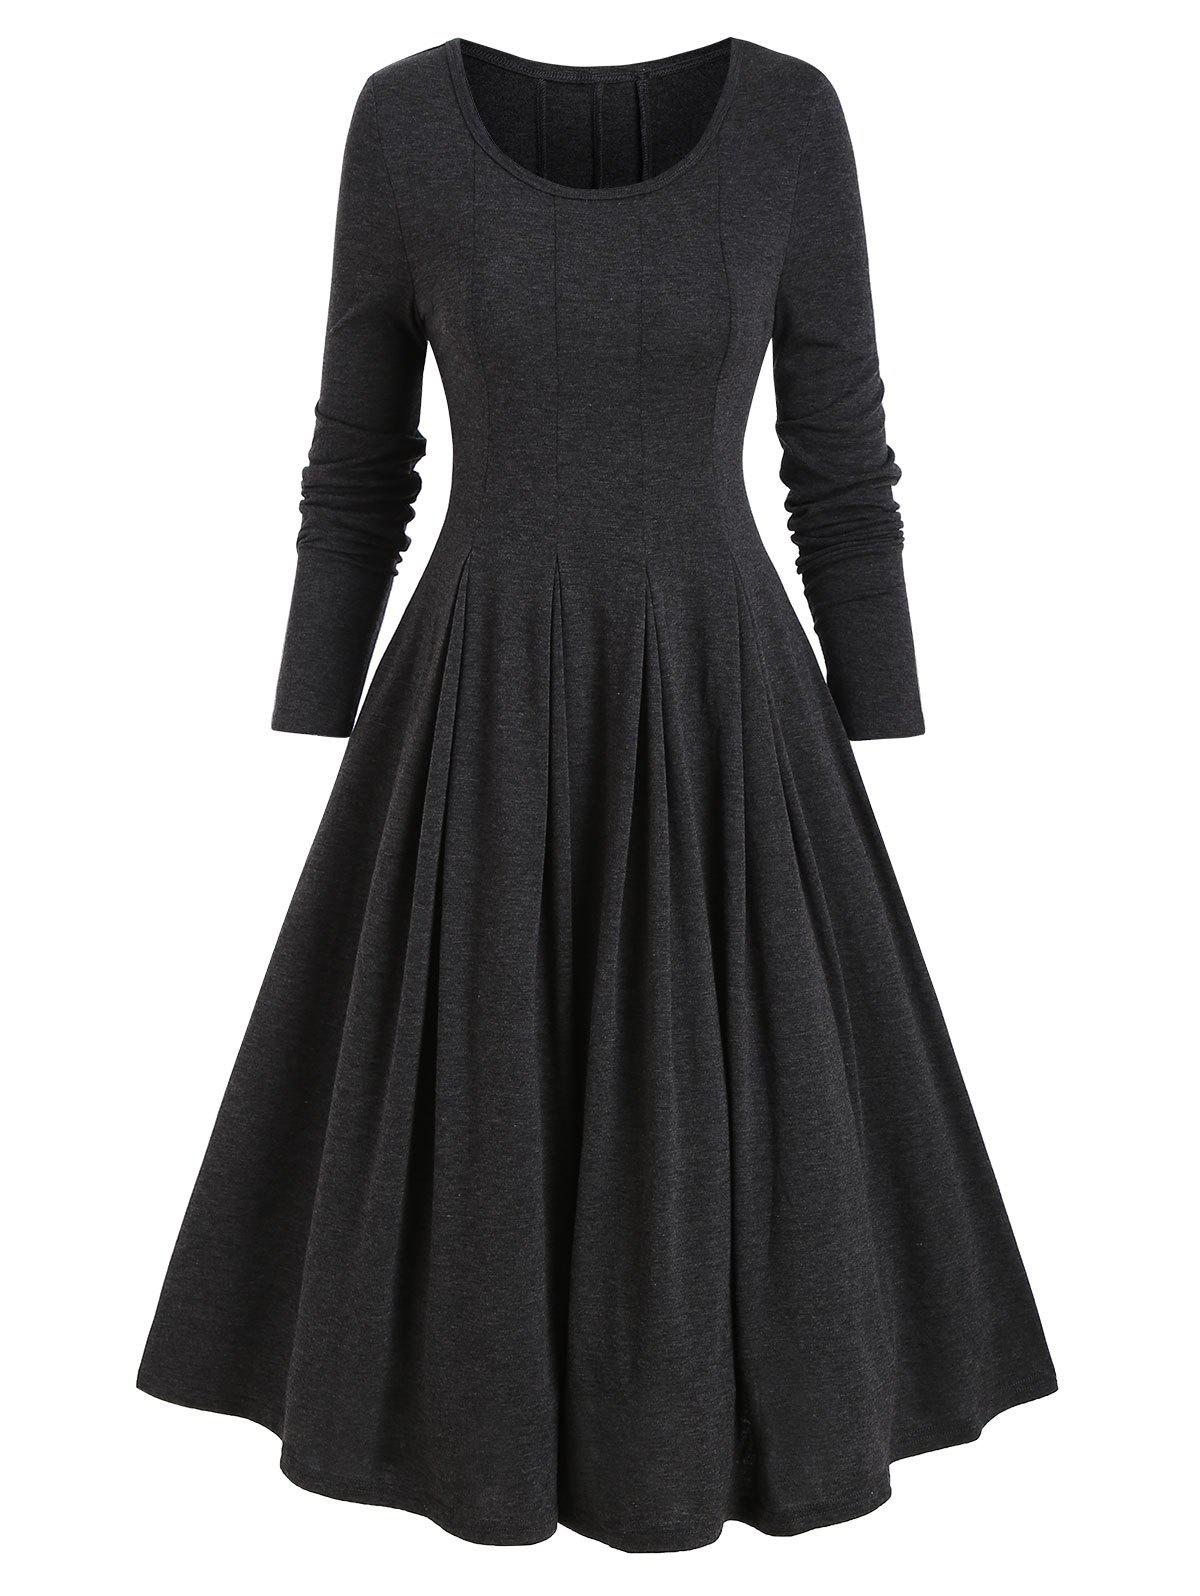 Long Sleeve Heathered Pleated Dress - DARK GRAY 2XL